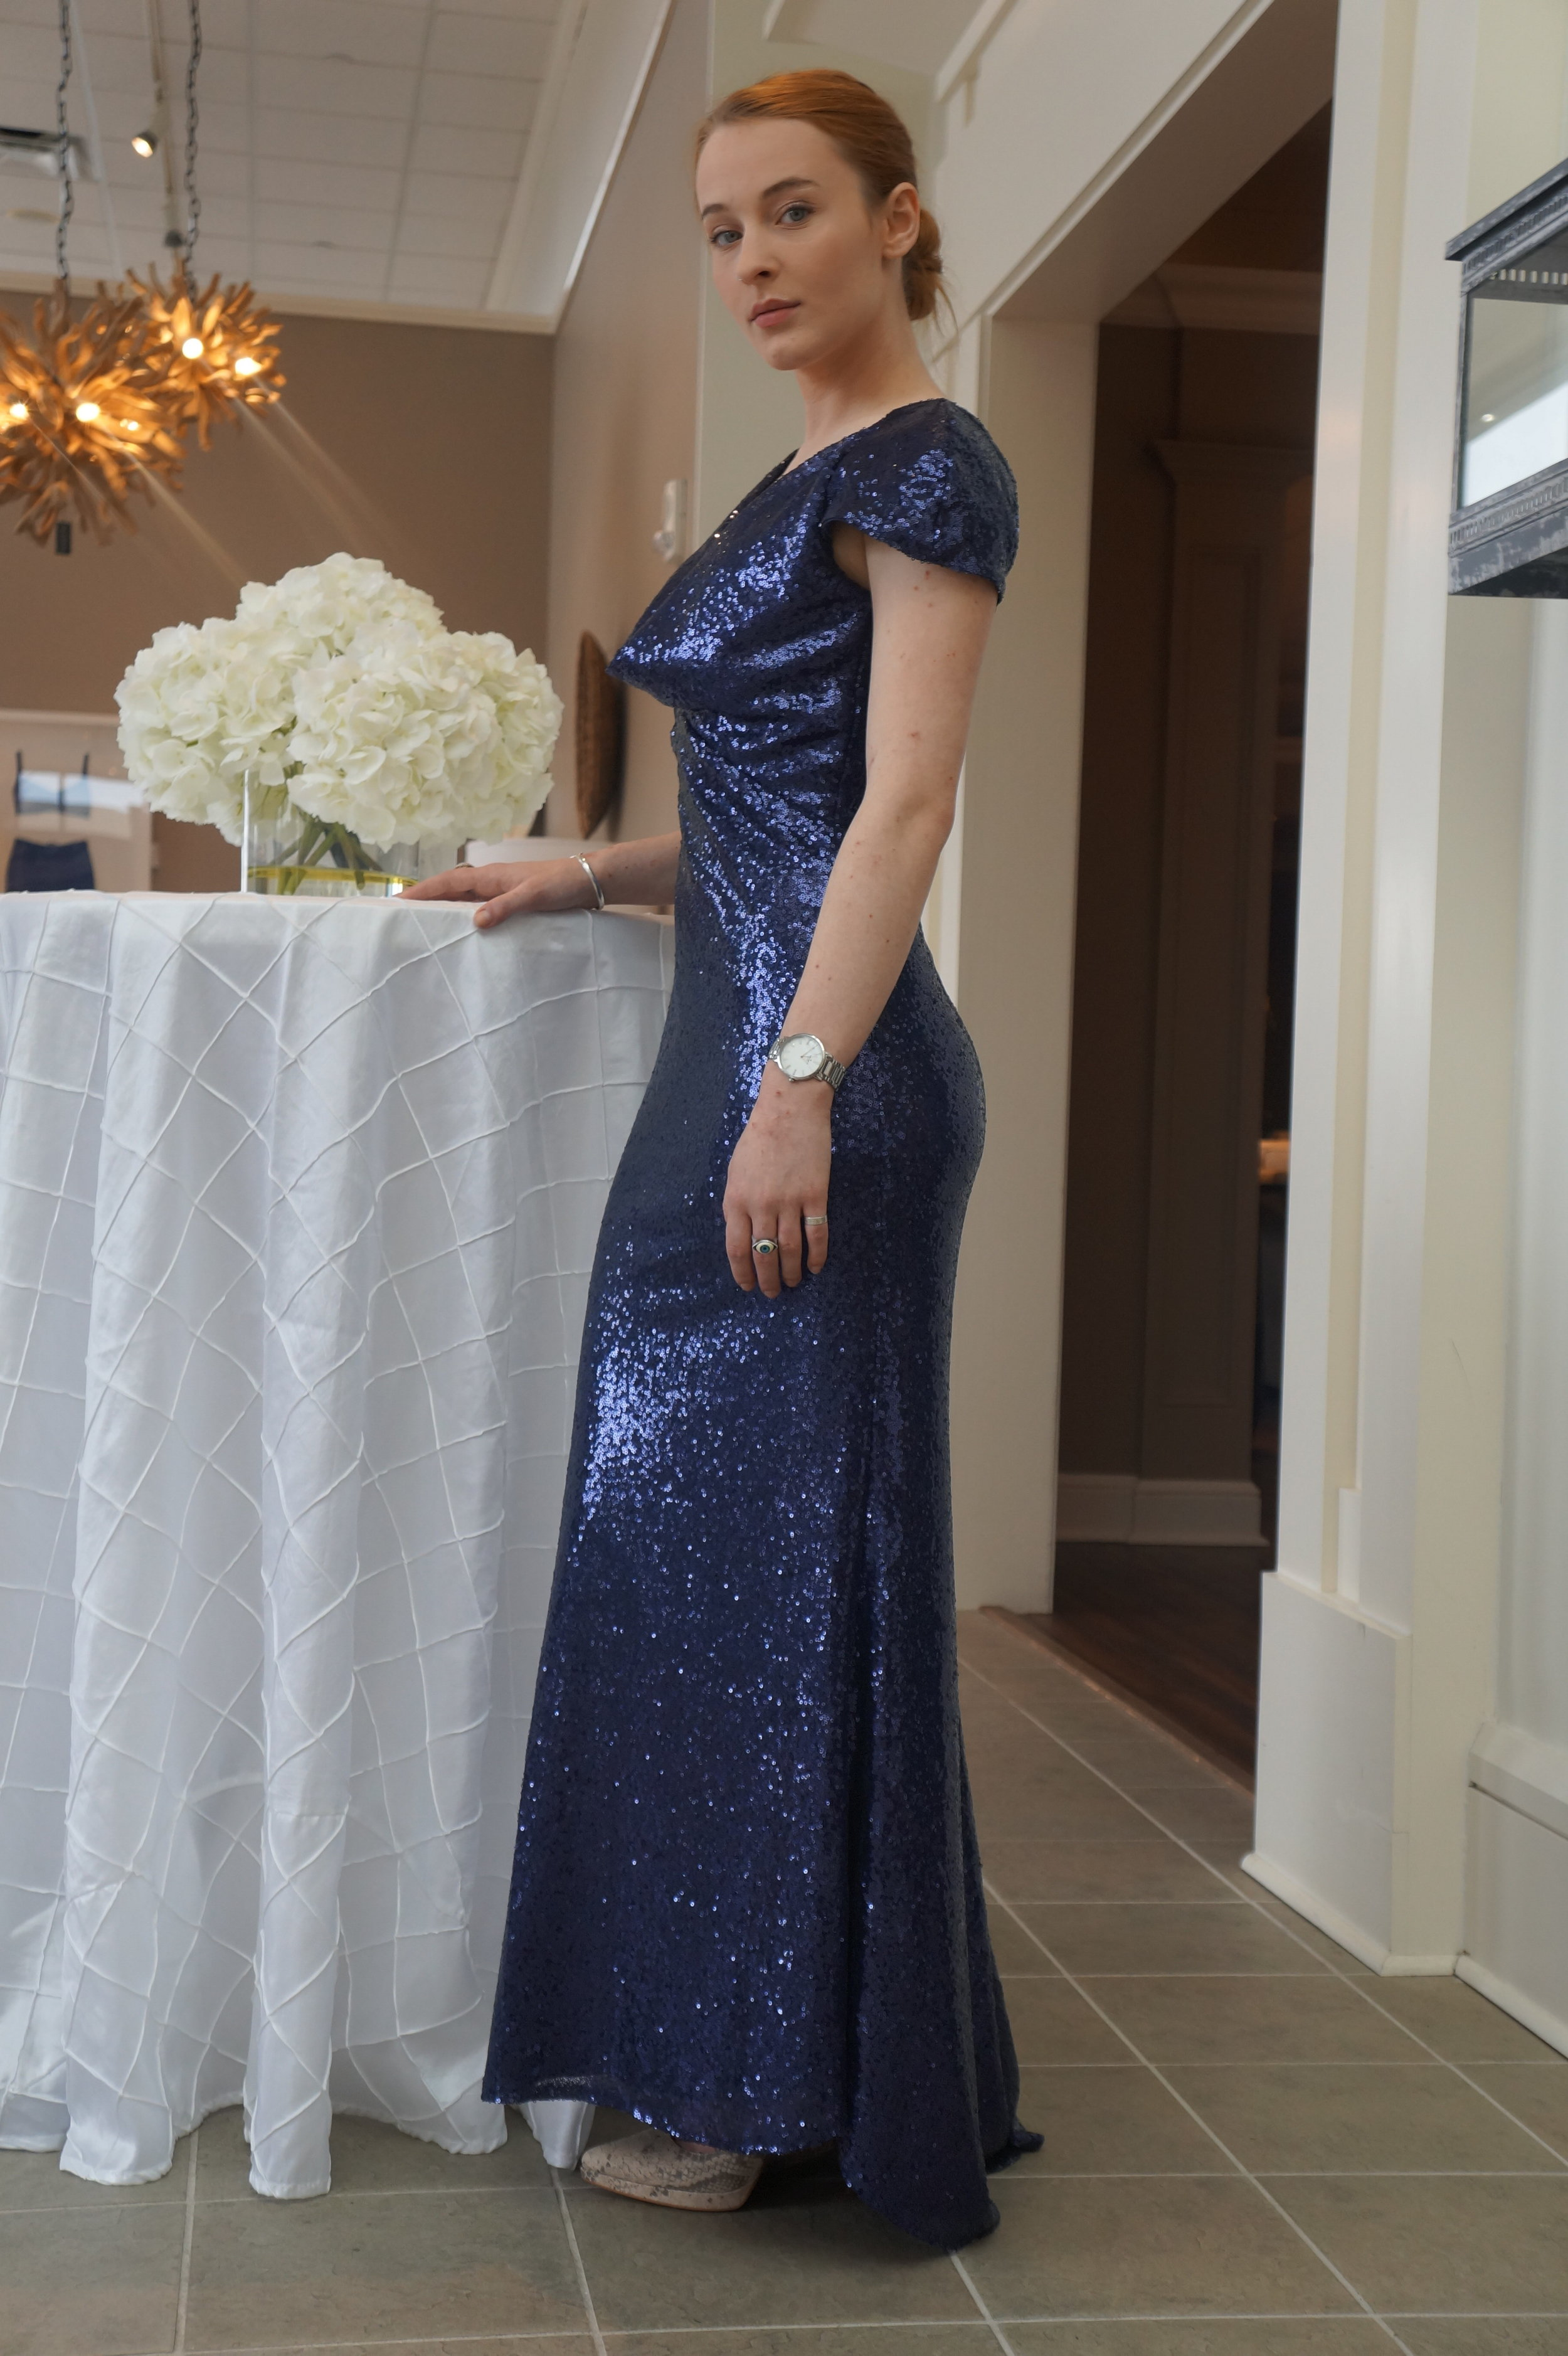 Andrea Fenise Memphis Fashion Blogger does a soft launch of Proposed Bridal at the Ethan Allen Bridal Show